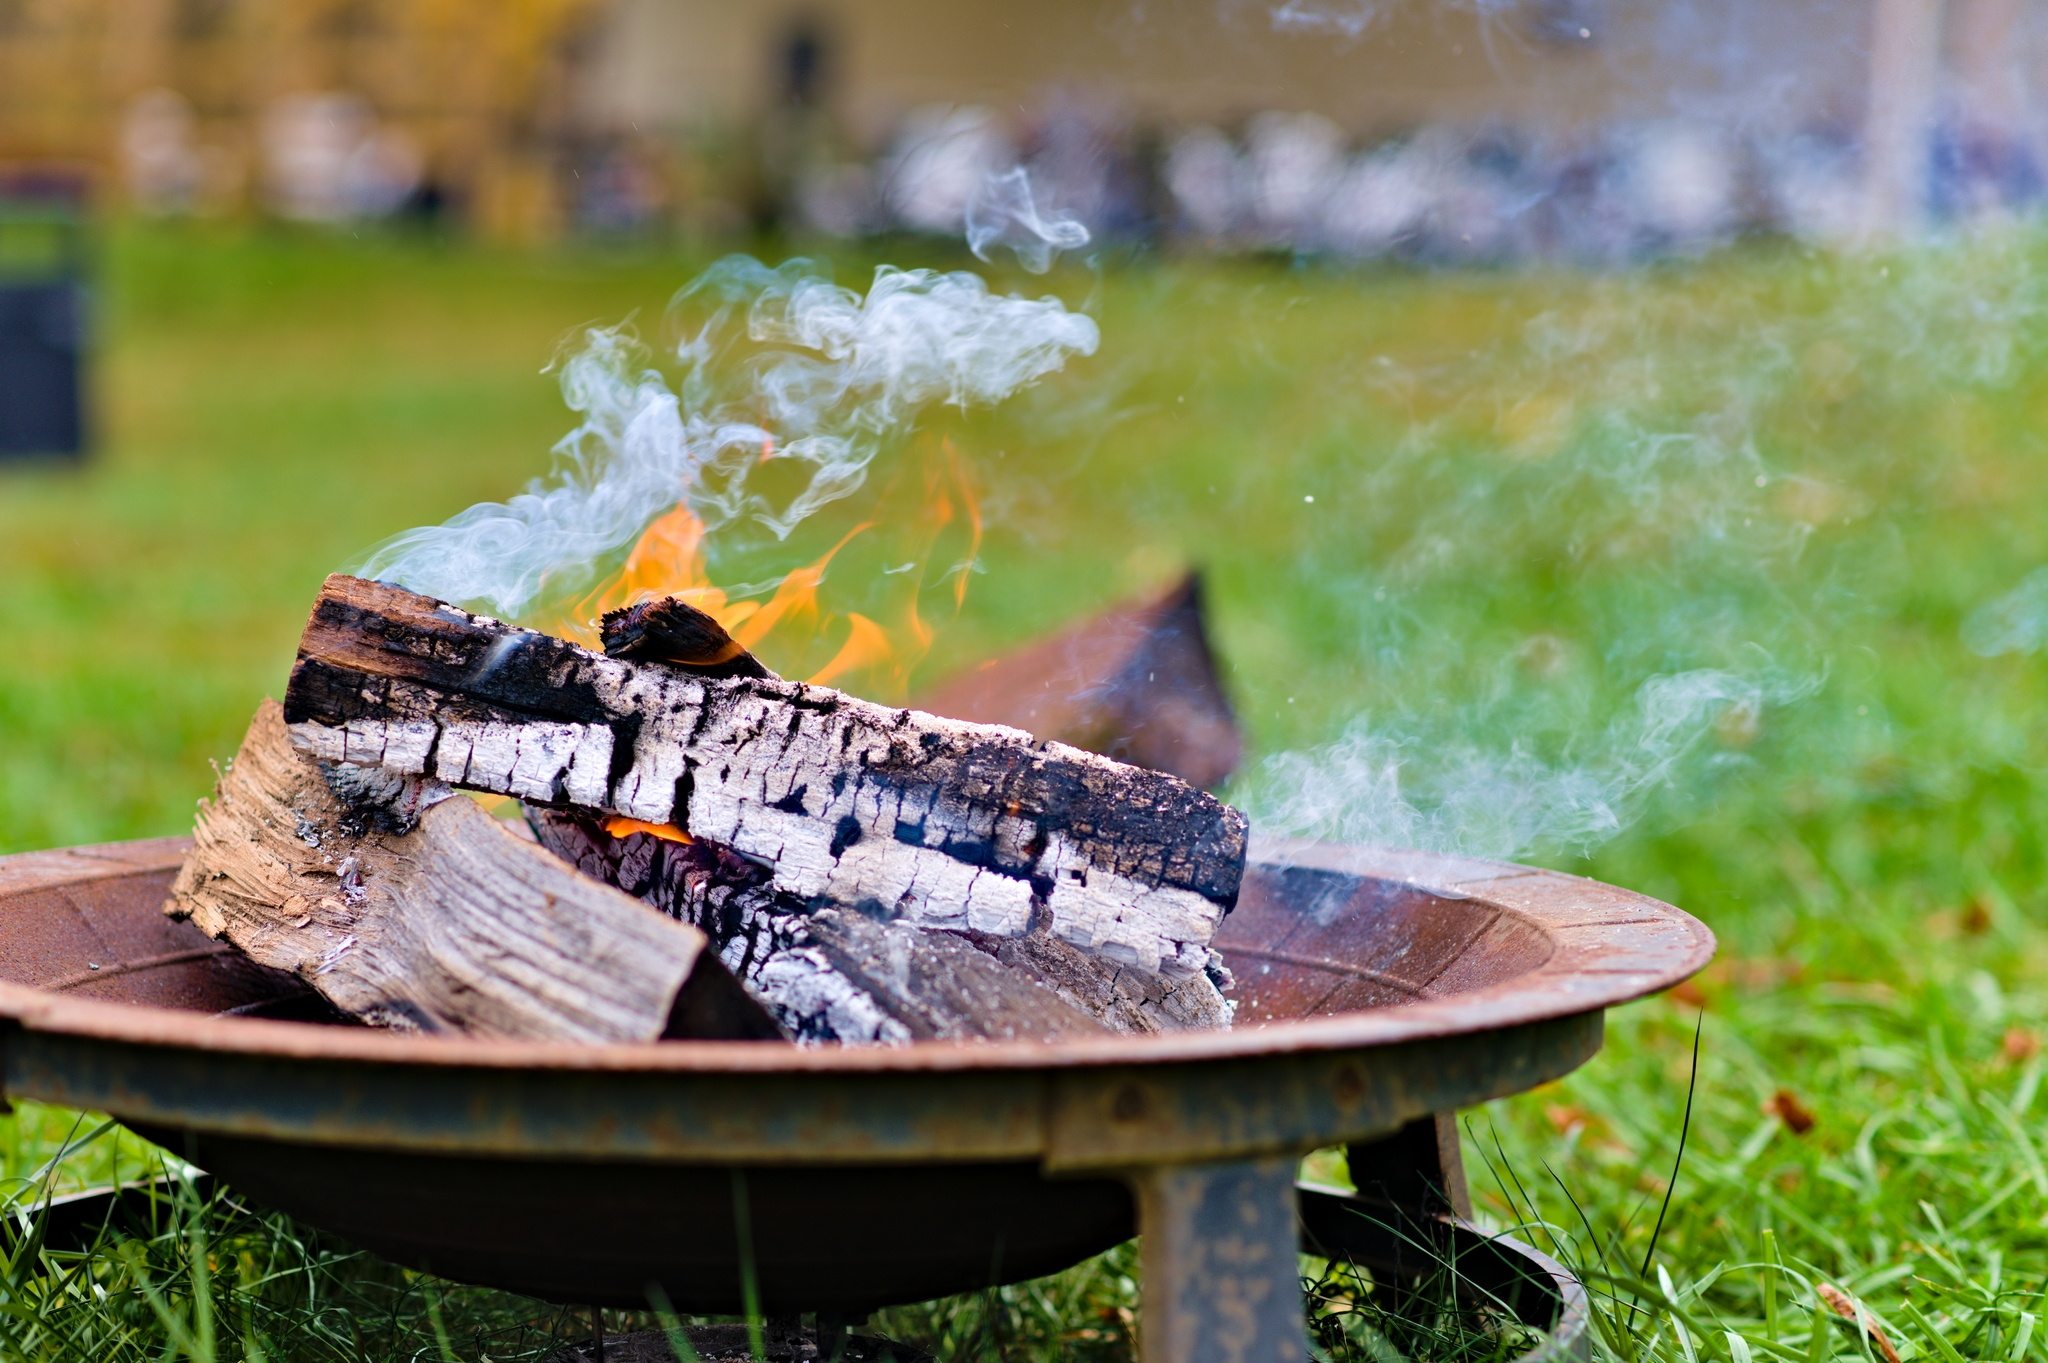 Fire pit with burning wood